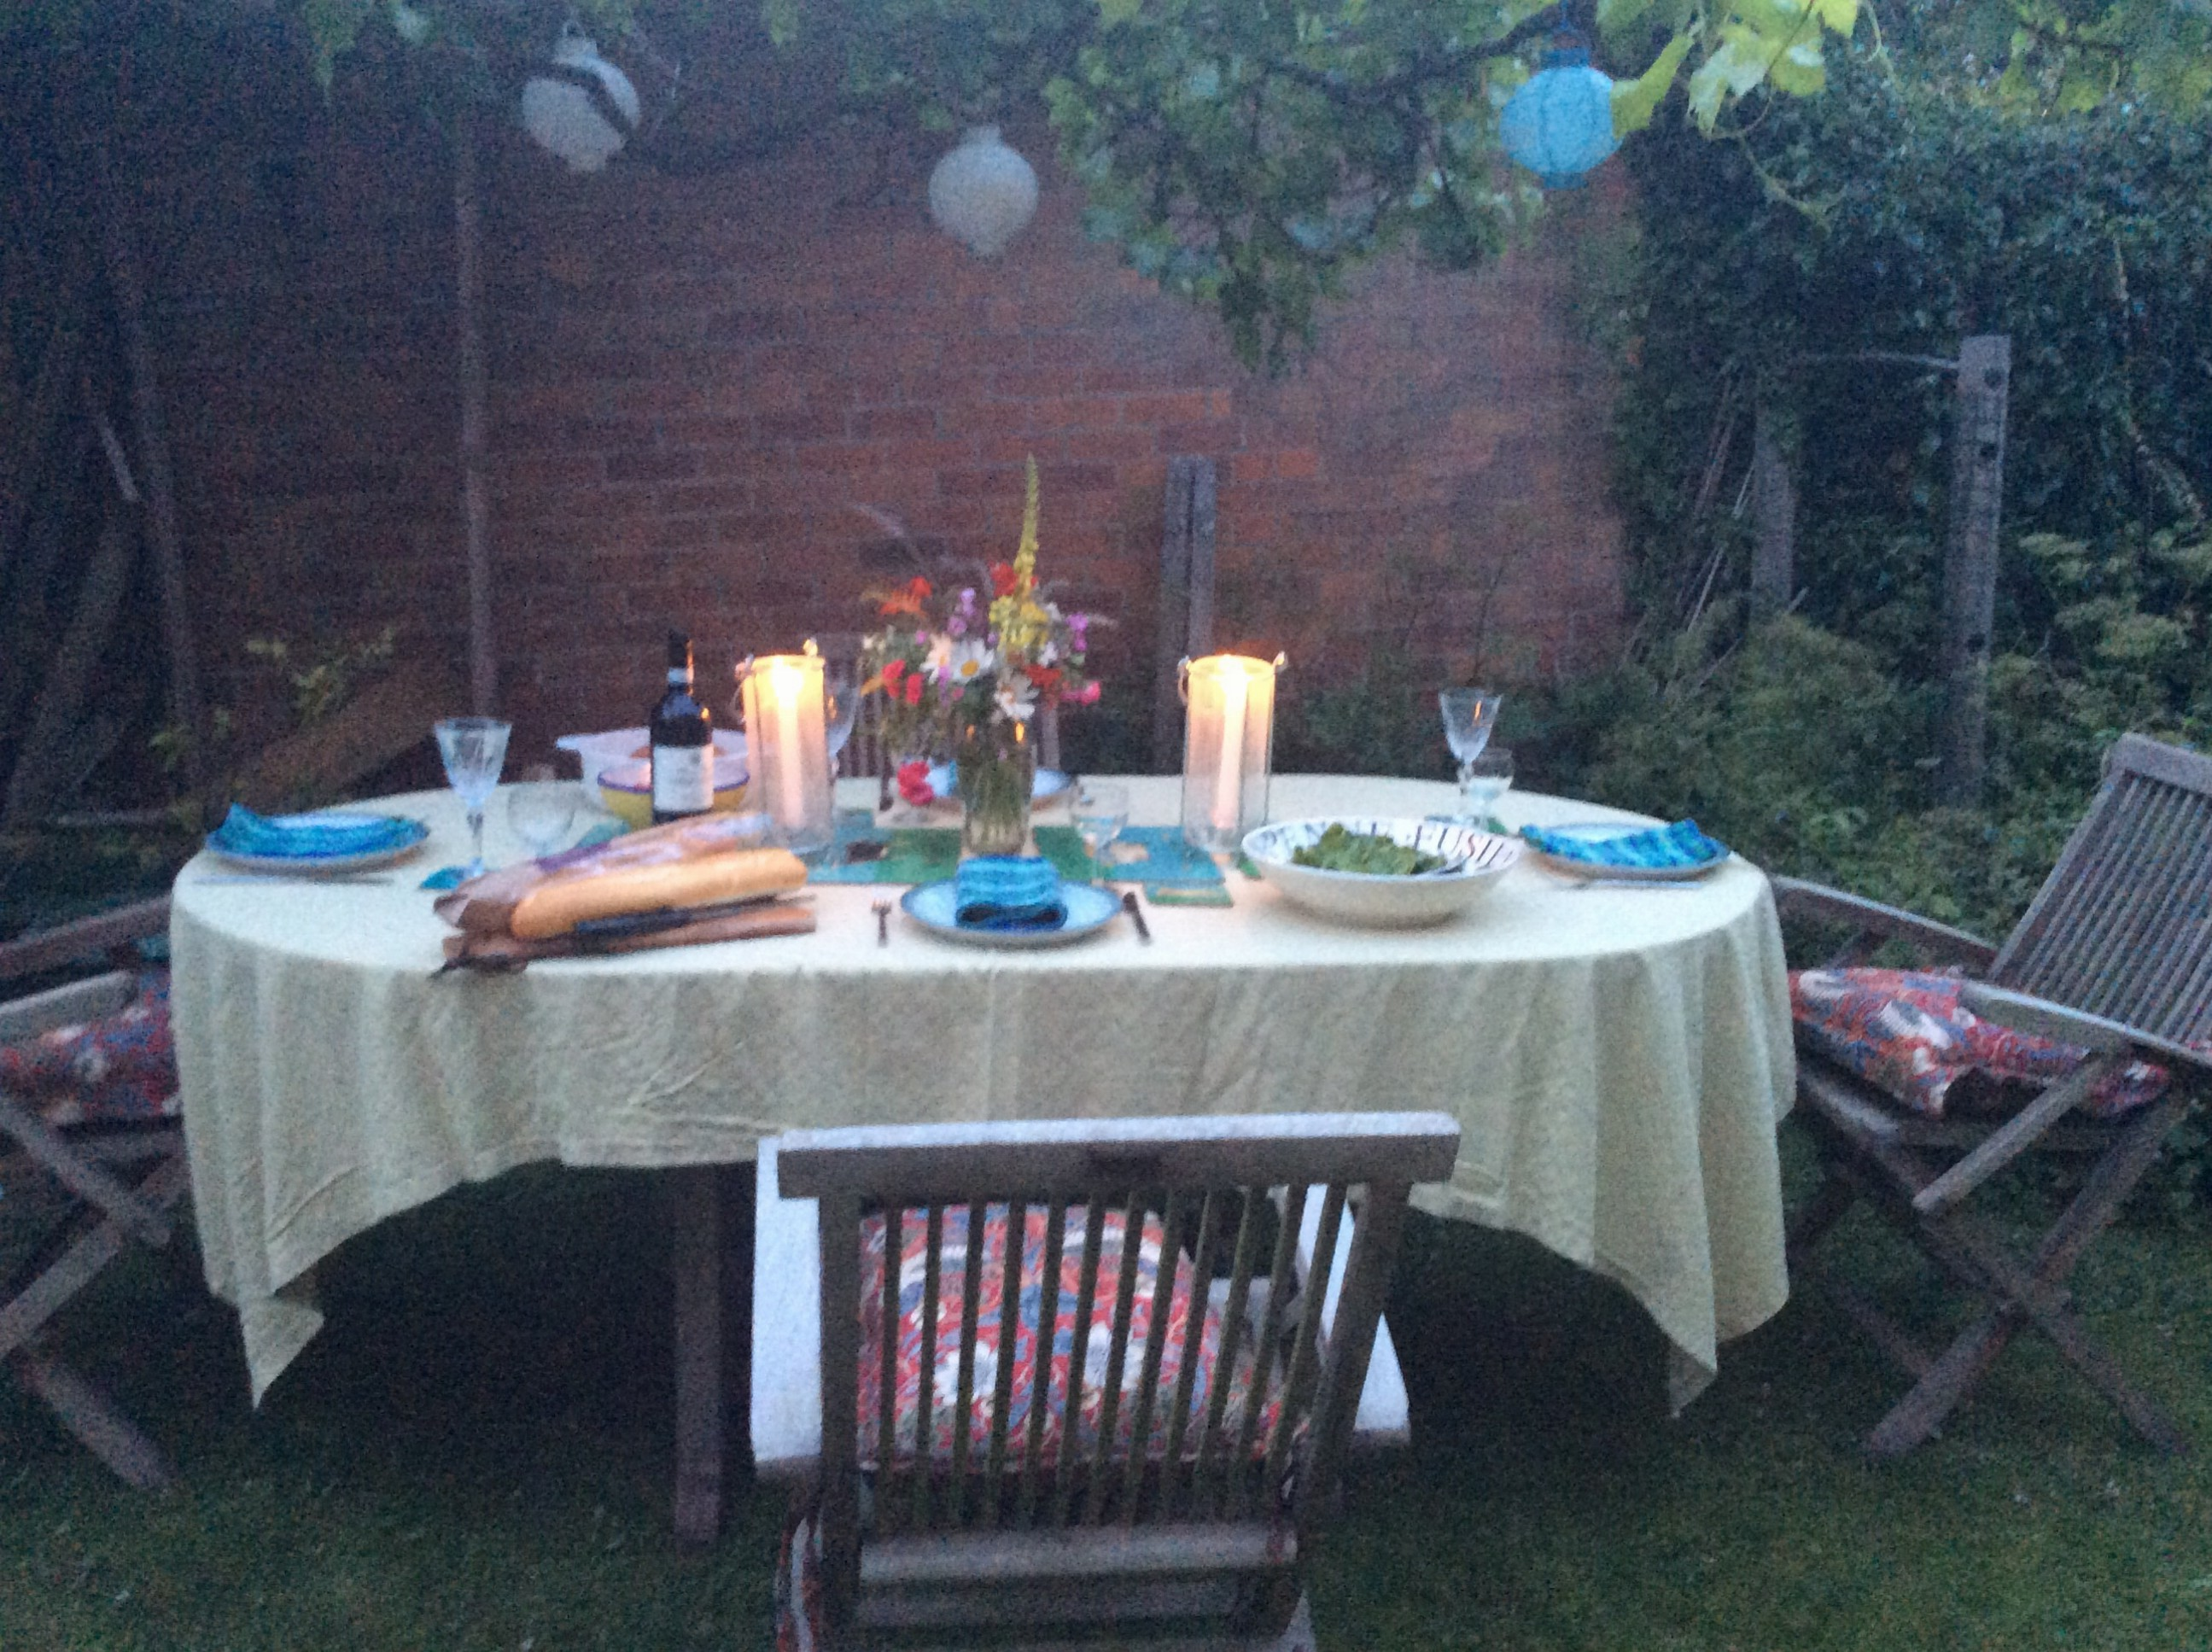 Before another lovely meal with Nicky and Noel in the country.